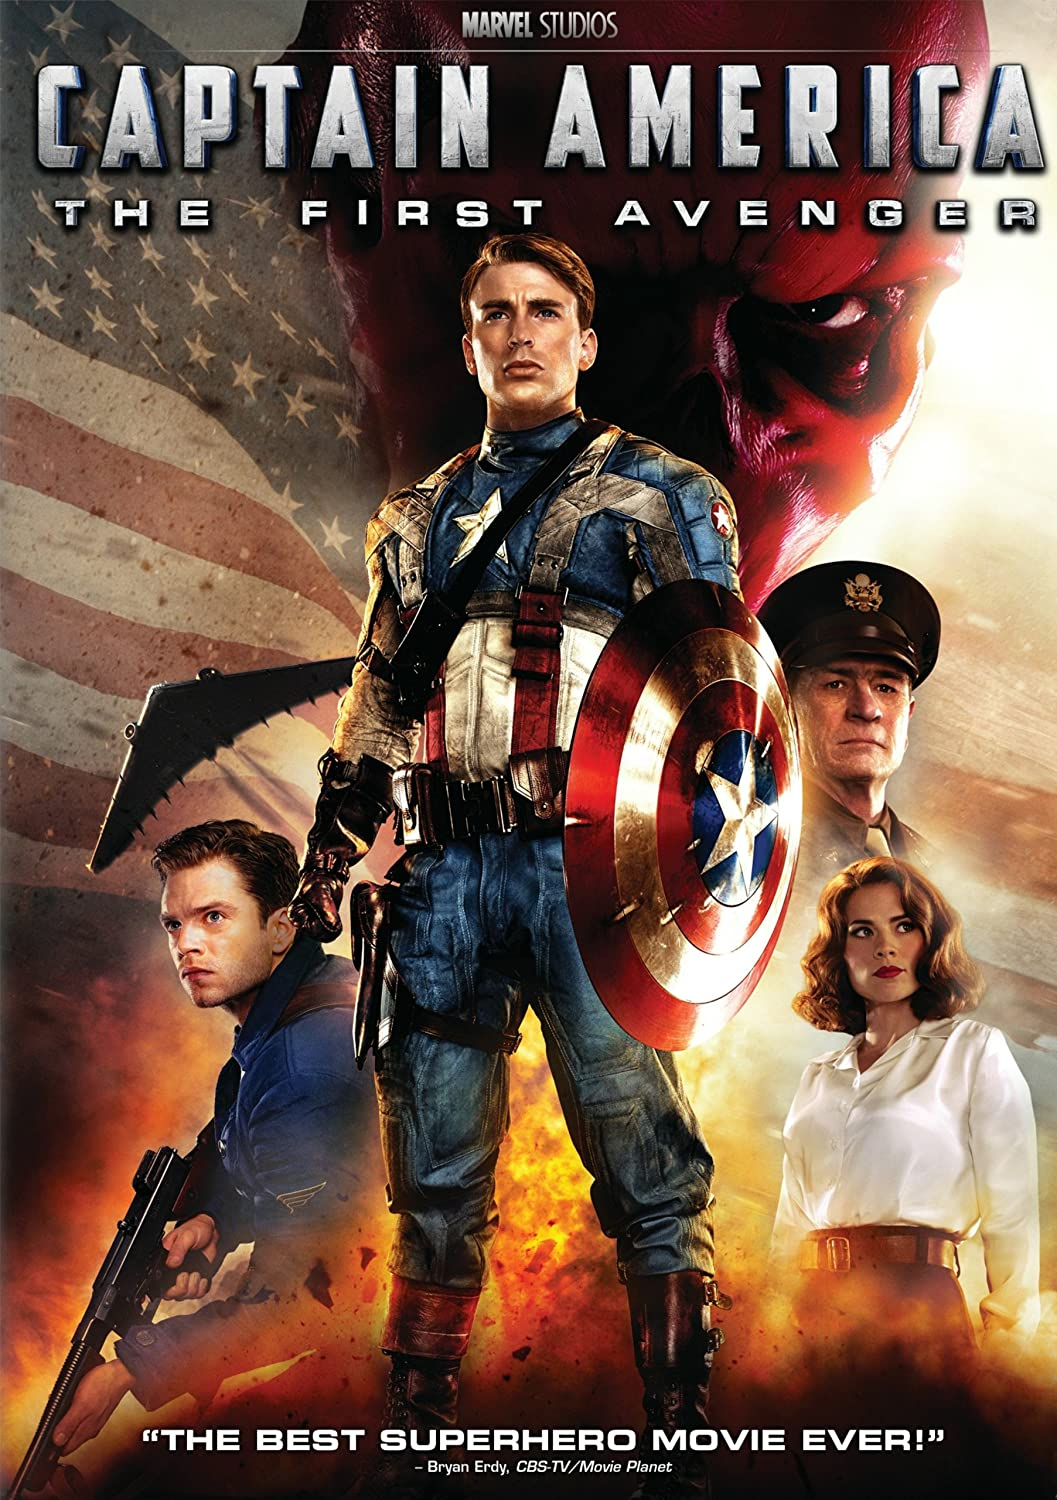 Amazon Com Movie Poster Captain America Approx Size 11x8 Inches Posters Prints